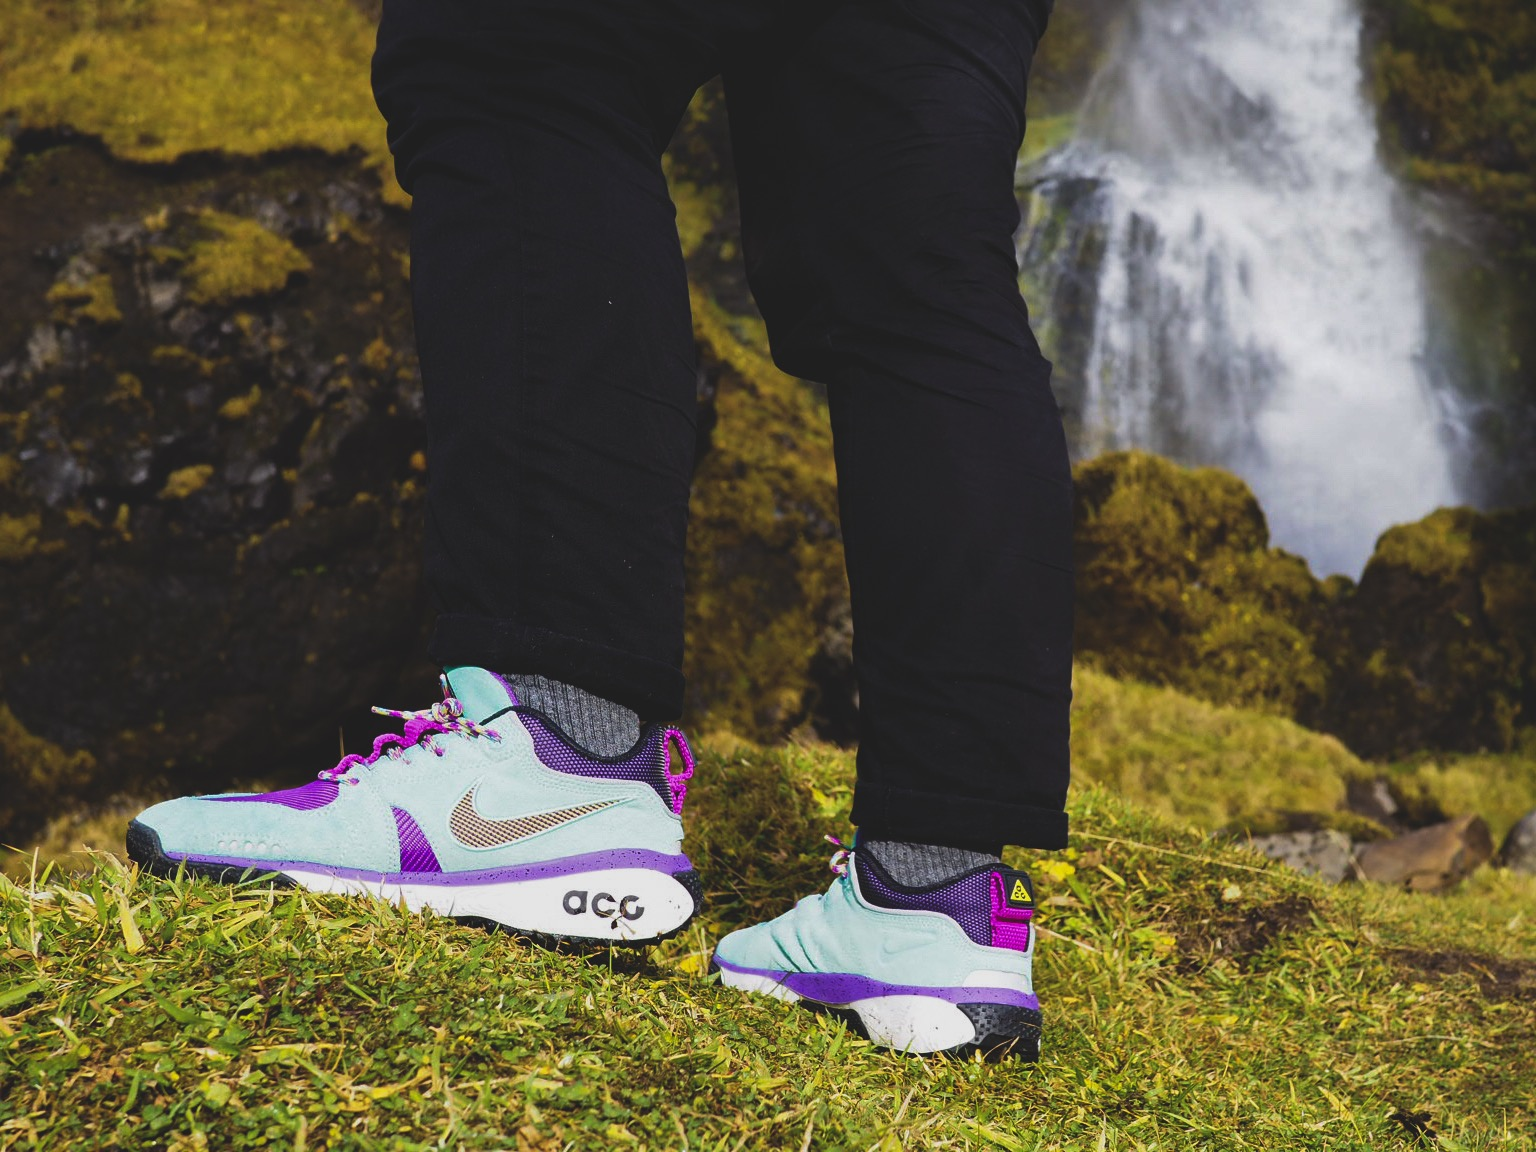 Debilidad Evacuación Anoi  I Went to Iceland to Test Out the Nike ACG Dog Mountain [with on-feet  video] – Juberry